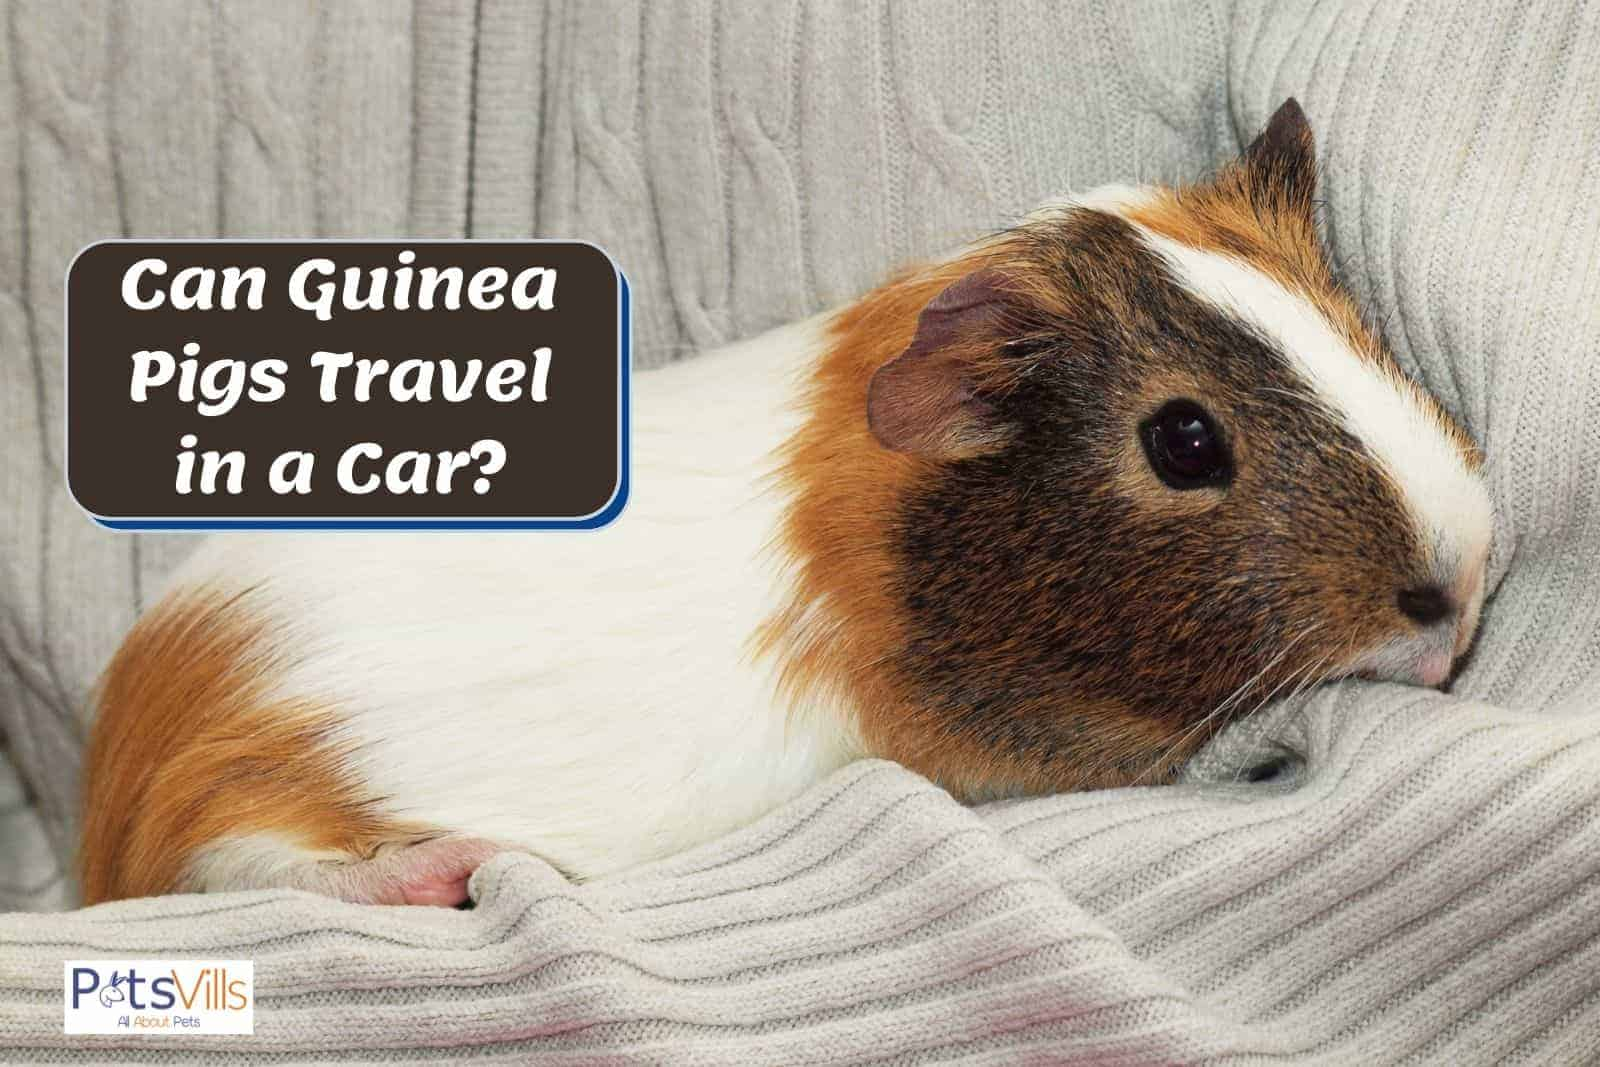 a cute guinea pig carried by a lady but can guinea pigs travel in a car?